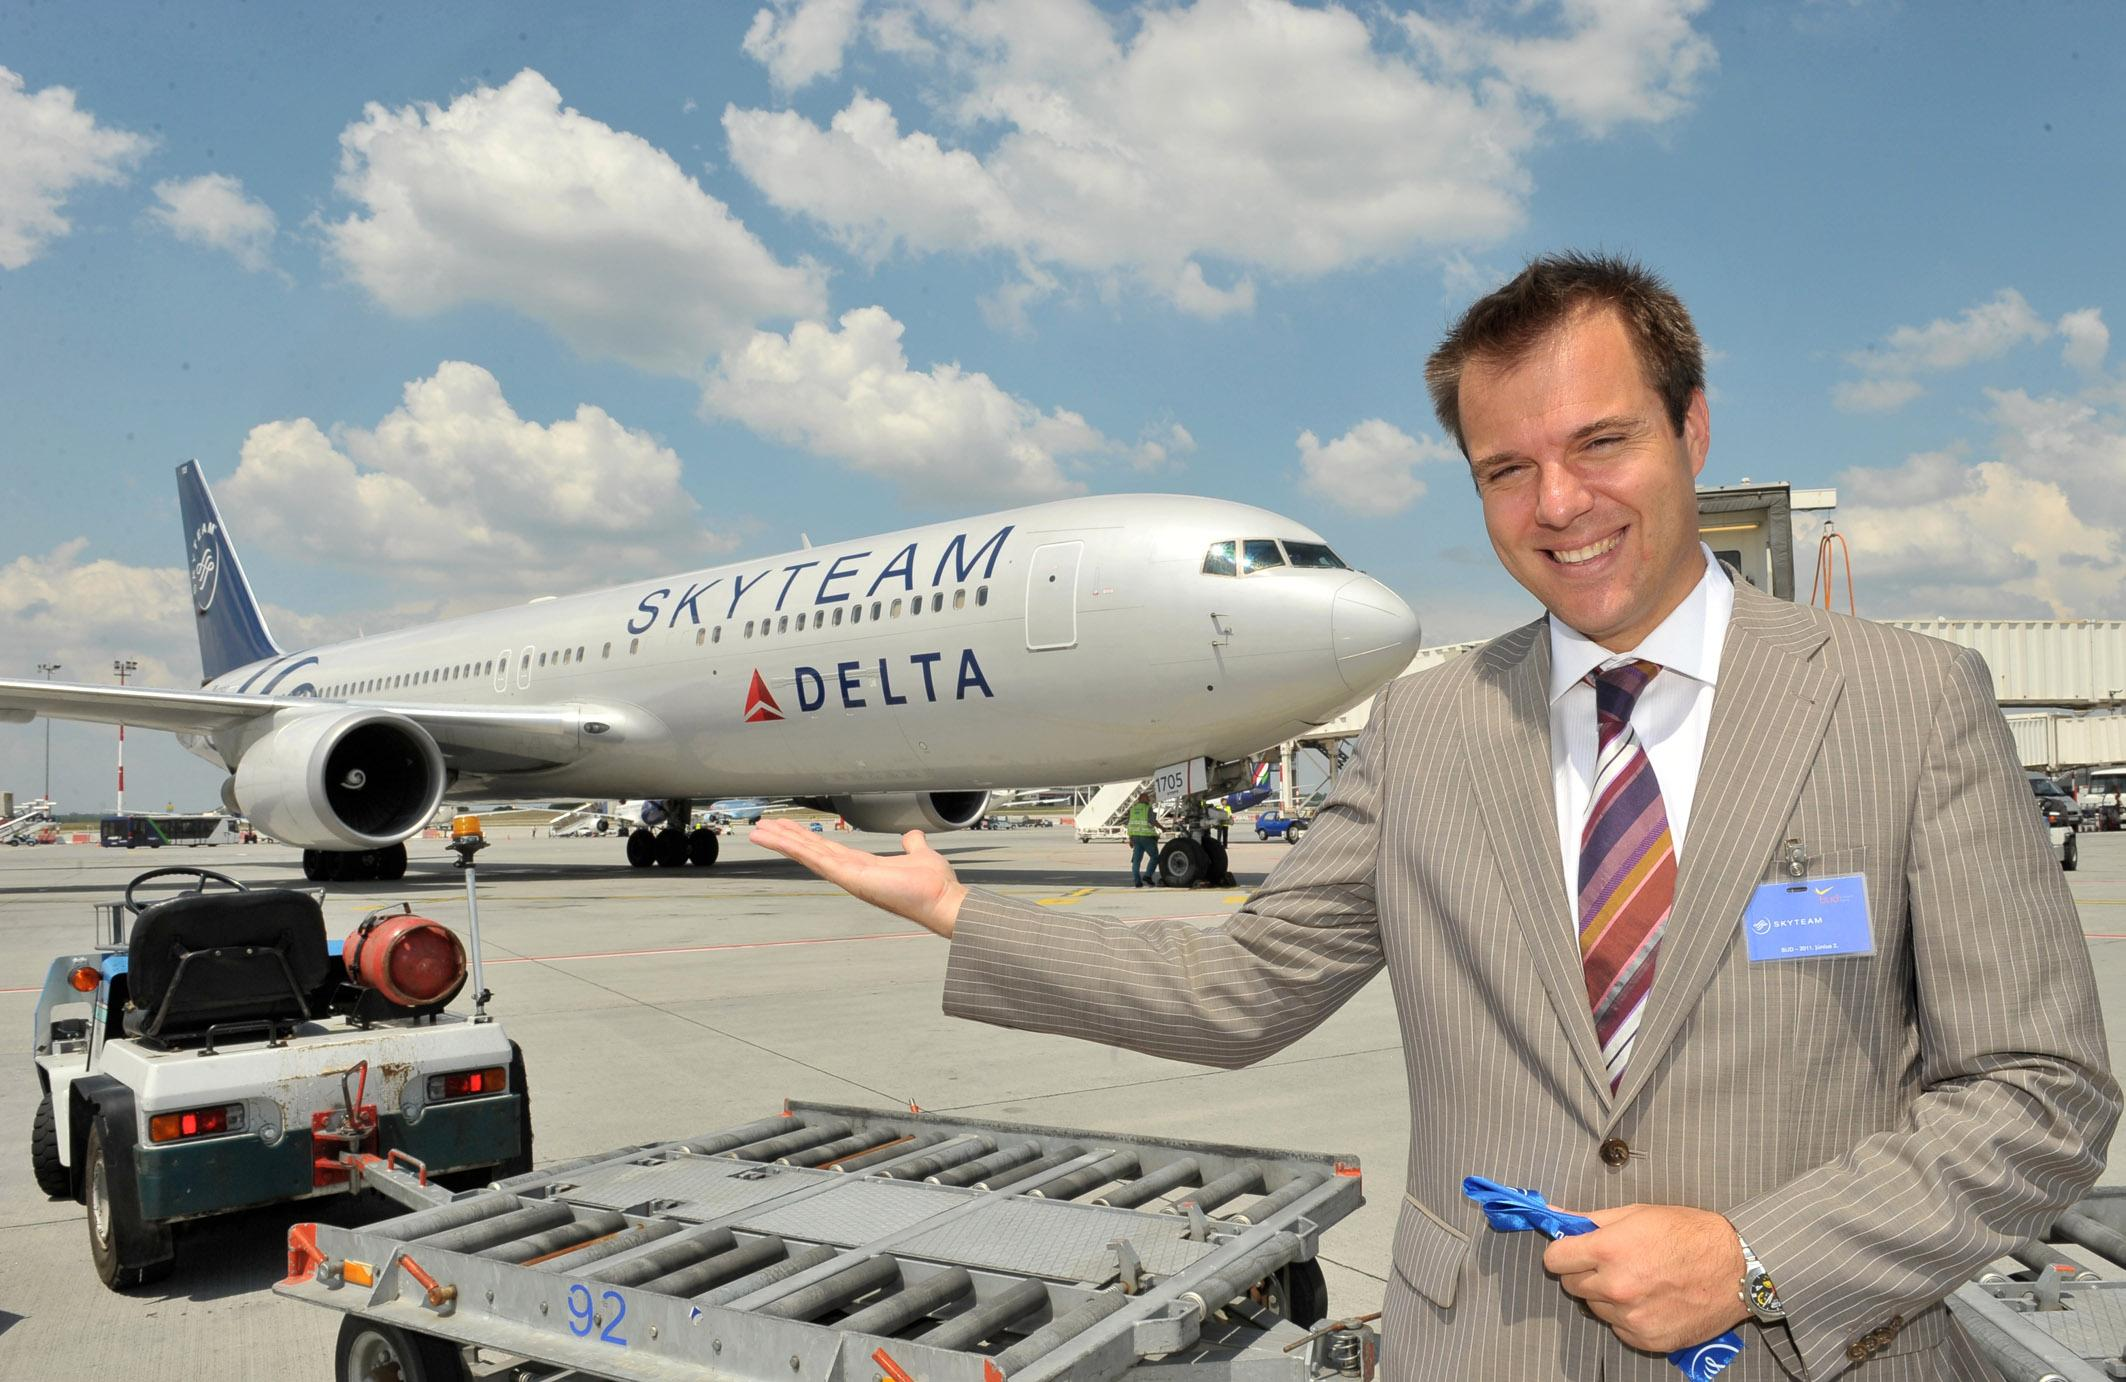 Special Interview: Botond Melles, Country Manager Hungary, Air France KLM Delta